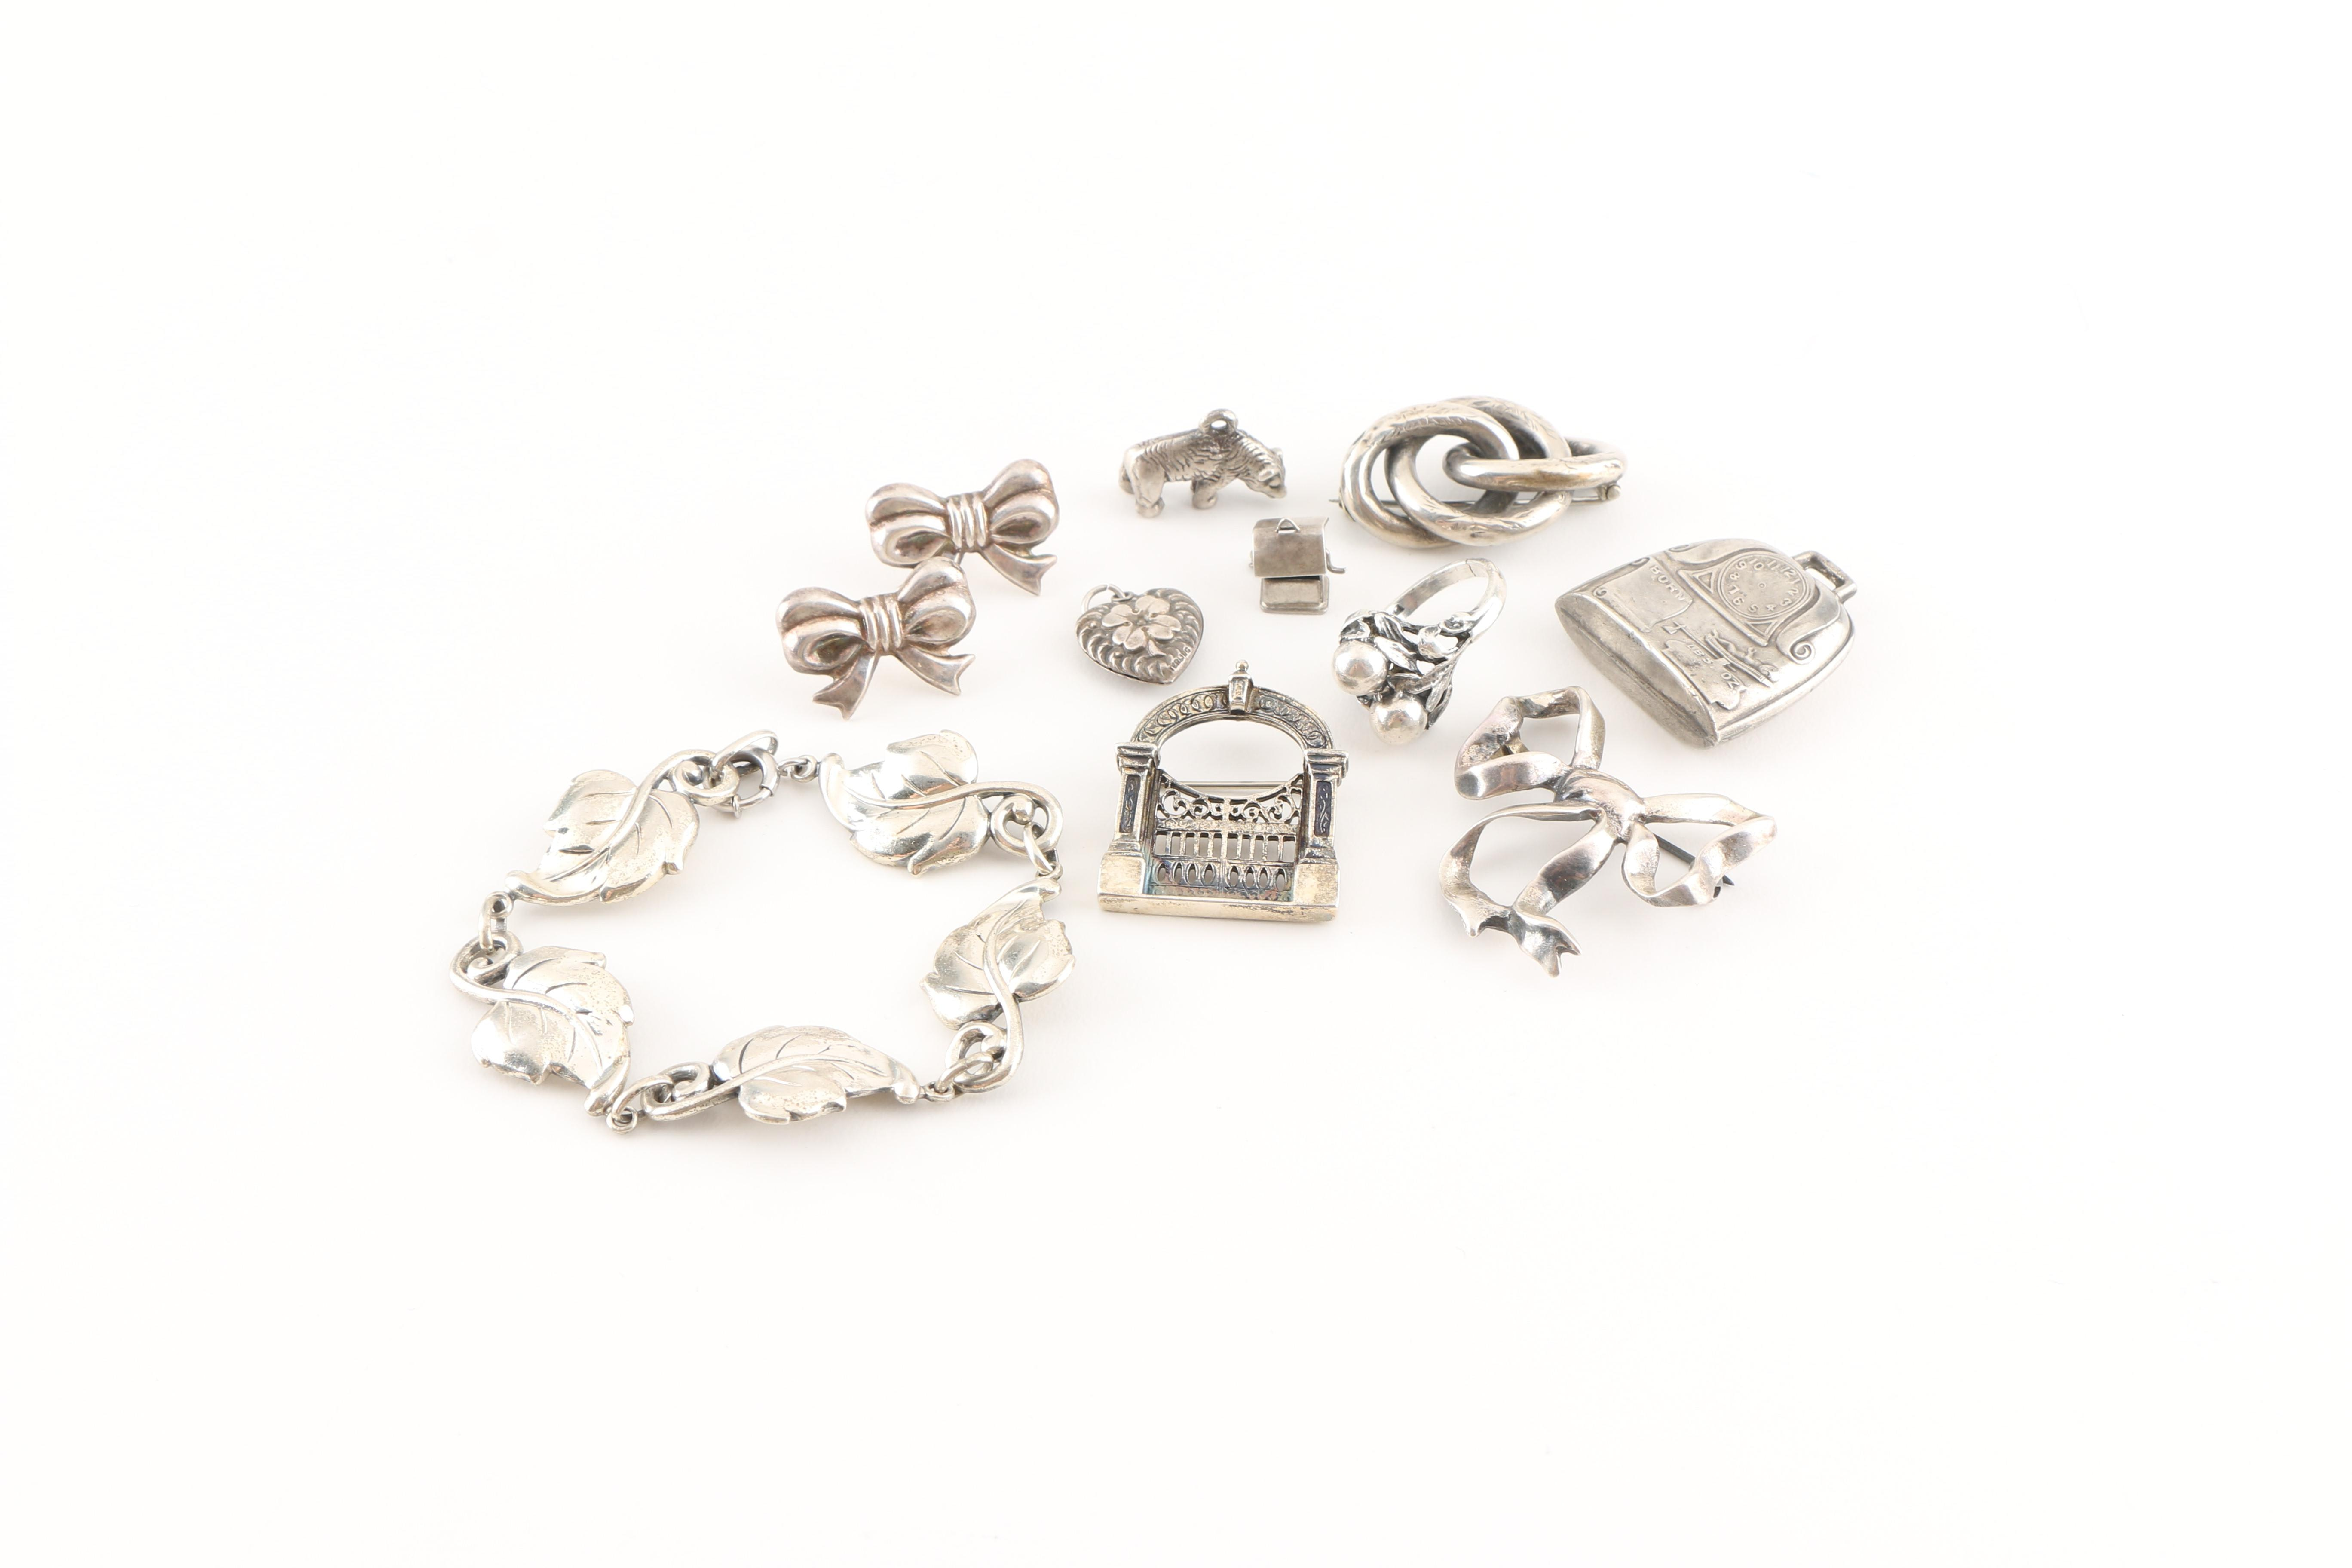 Assortment of Vintage Sterling Silver Jewelry Including Danecraft